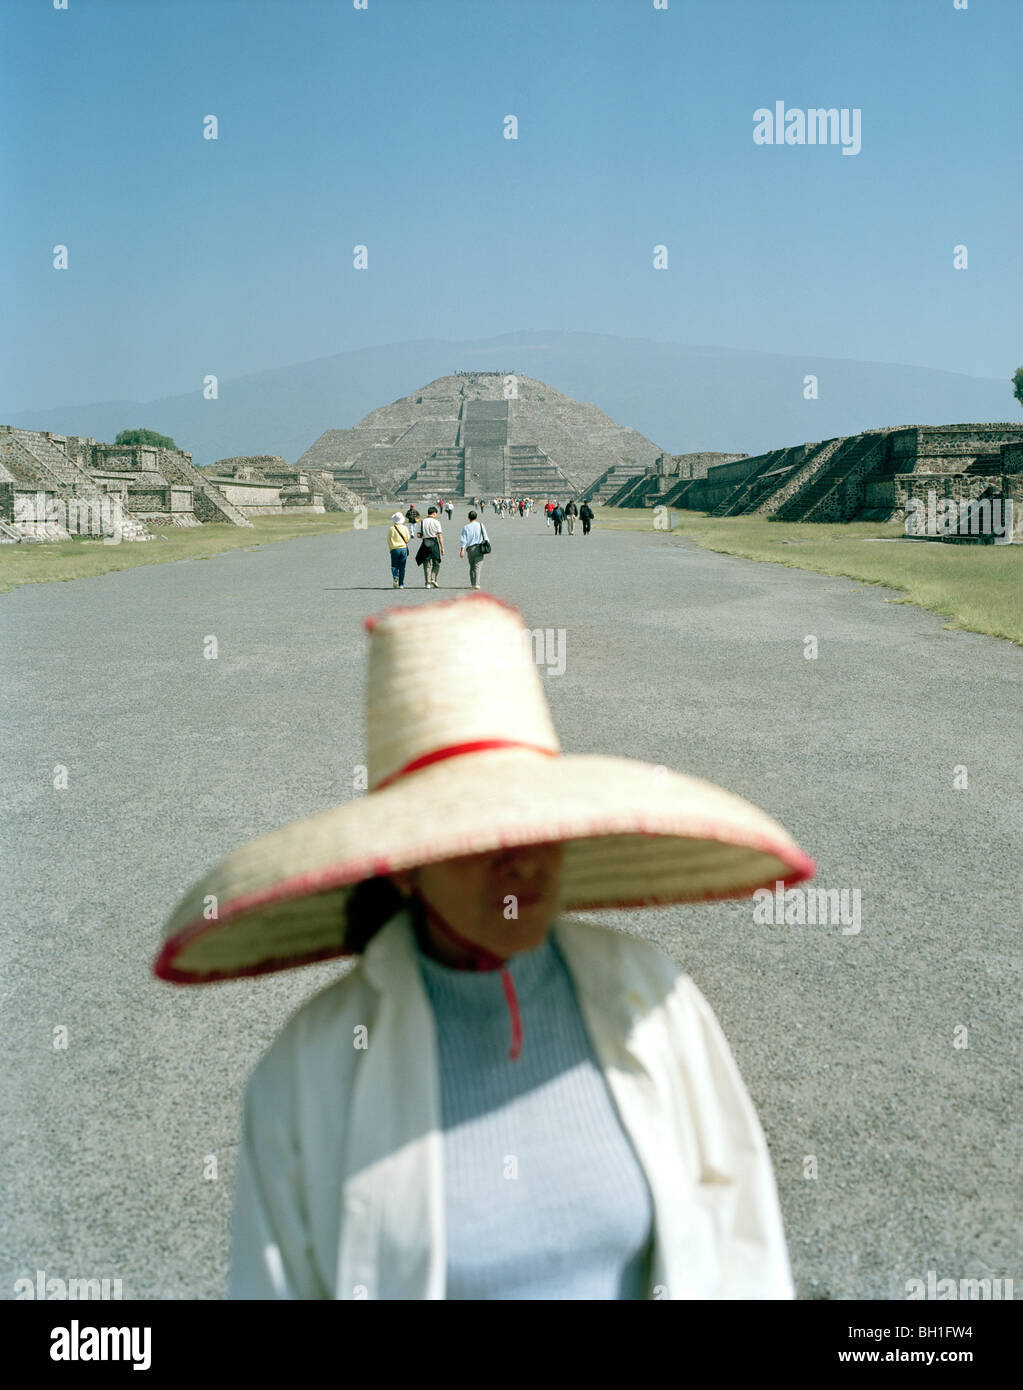 9737e3d713f33 Woman wearing a sombrero standing on the road in front of the moon palace